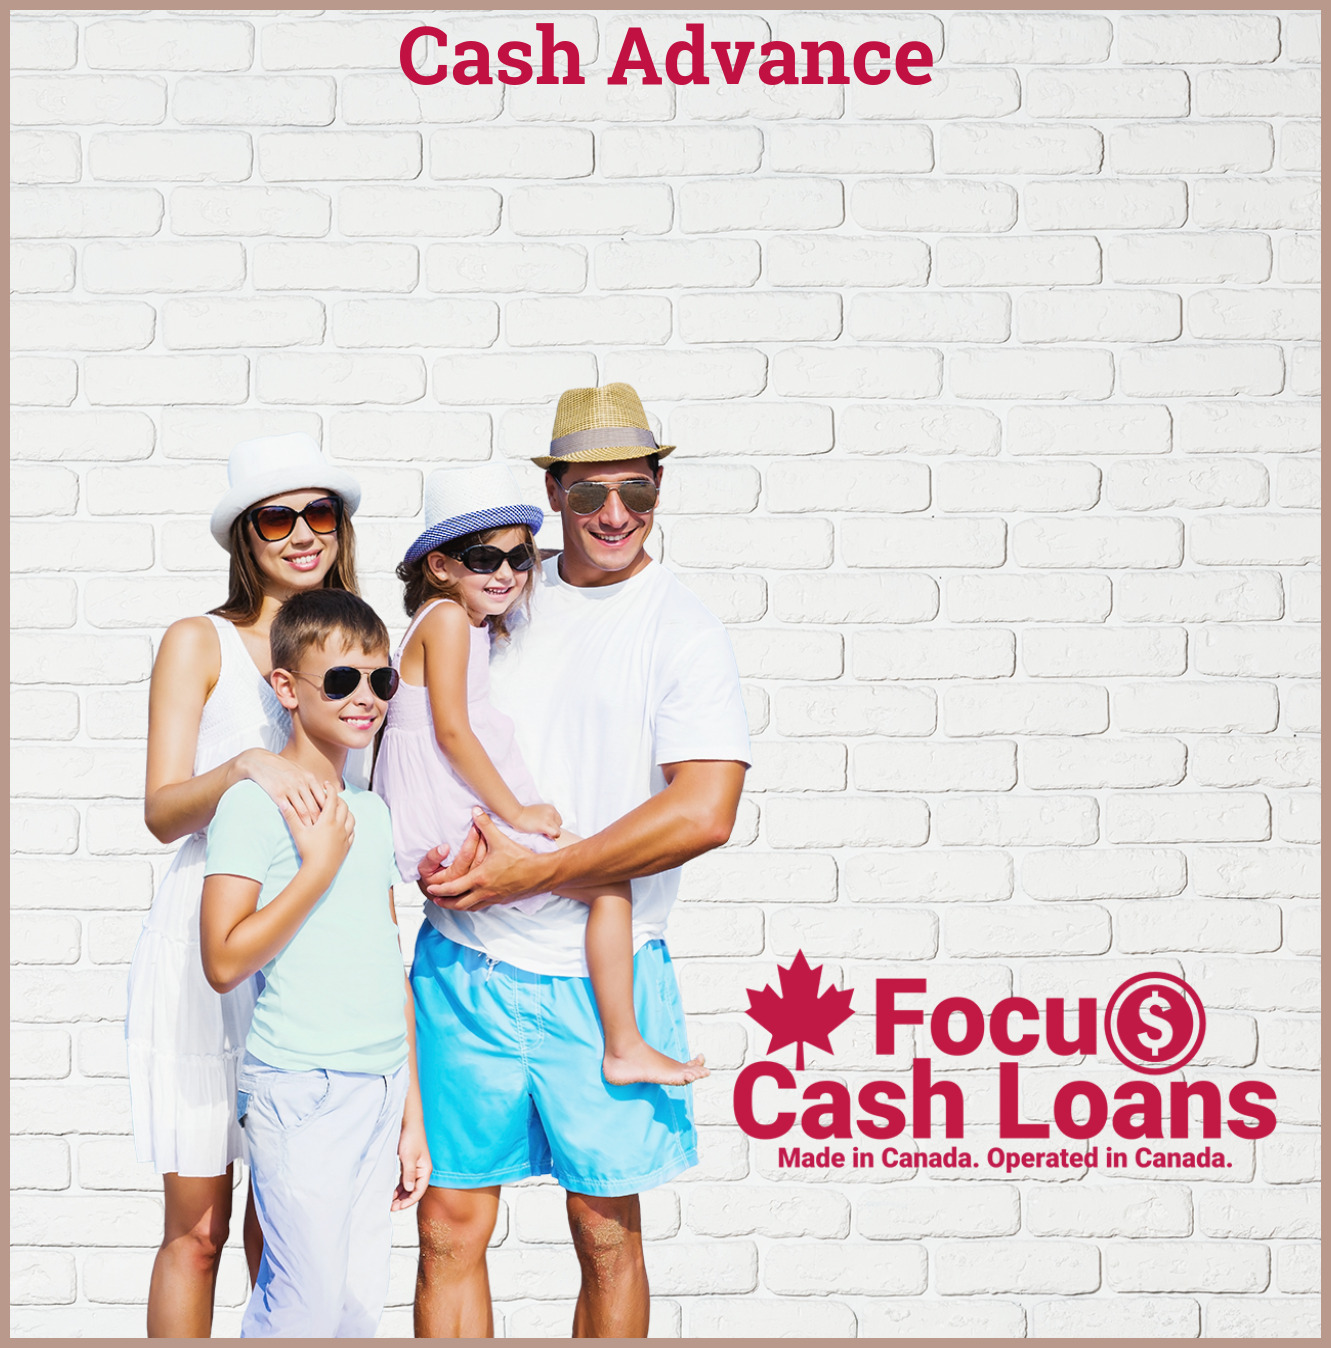 Easy Loans For People With Bad Credit - Borrow up to $1500 NOW!